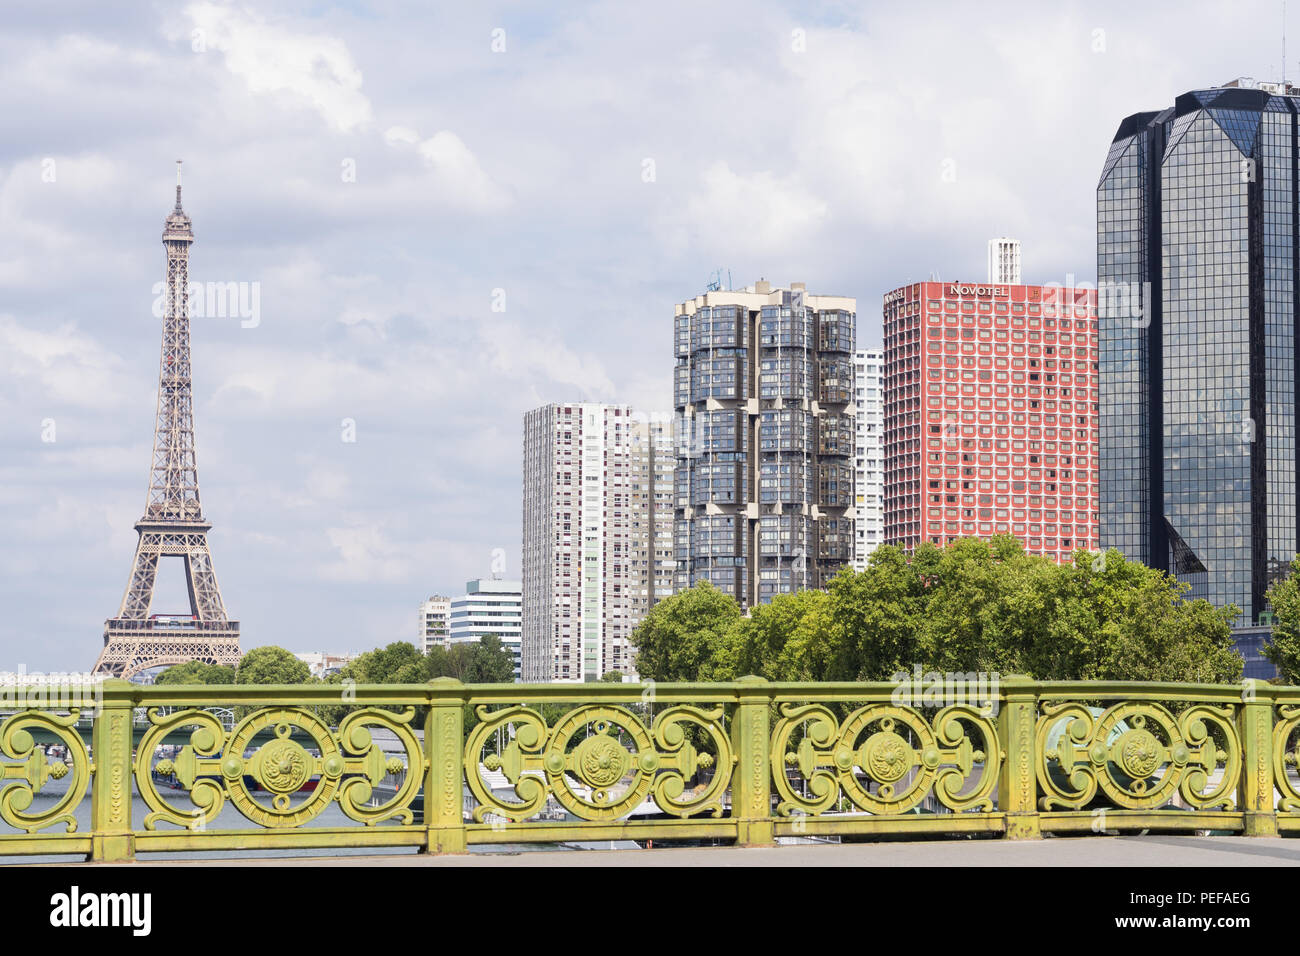 Eiffel Tower and residential skyscrapers on Quai de Grenelle seen from the Pont Mirabeau. France. - Stock Image